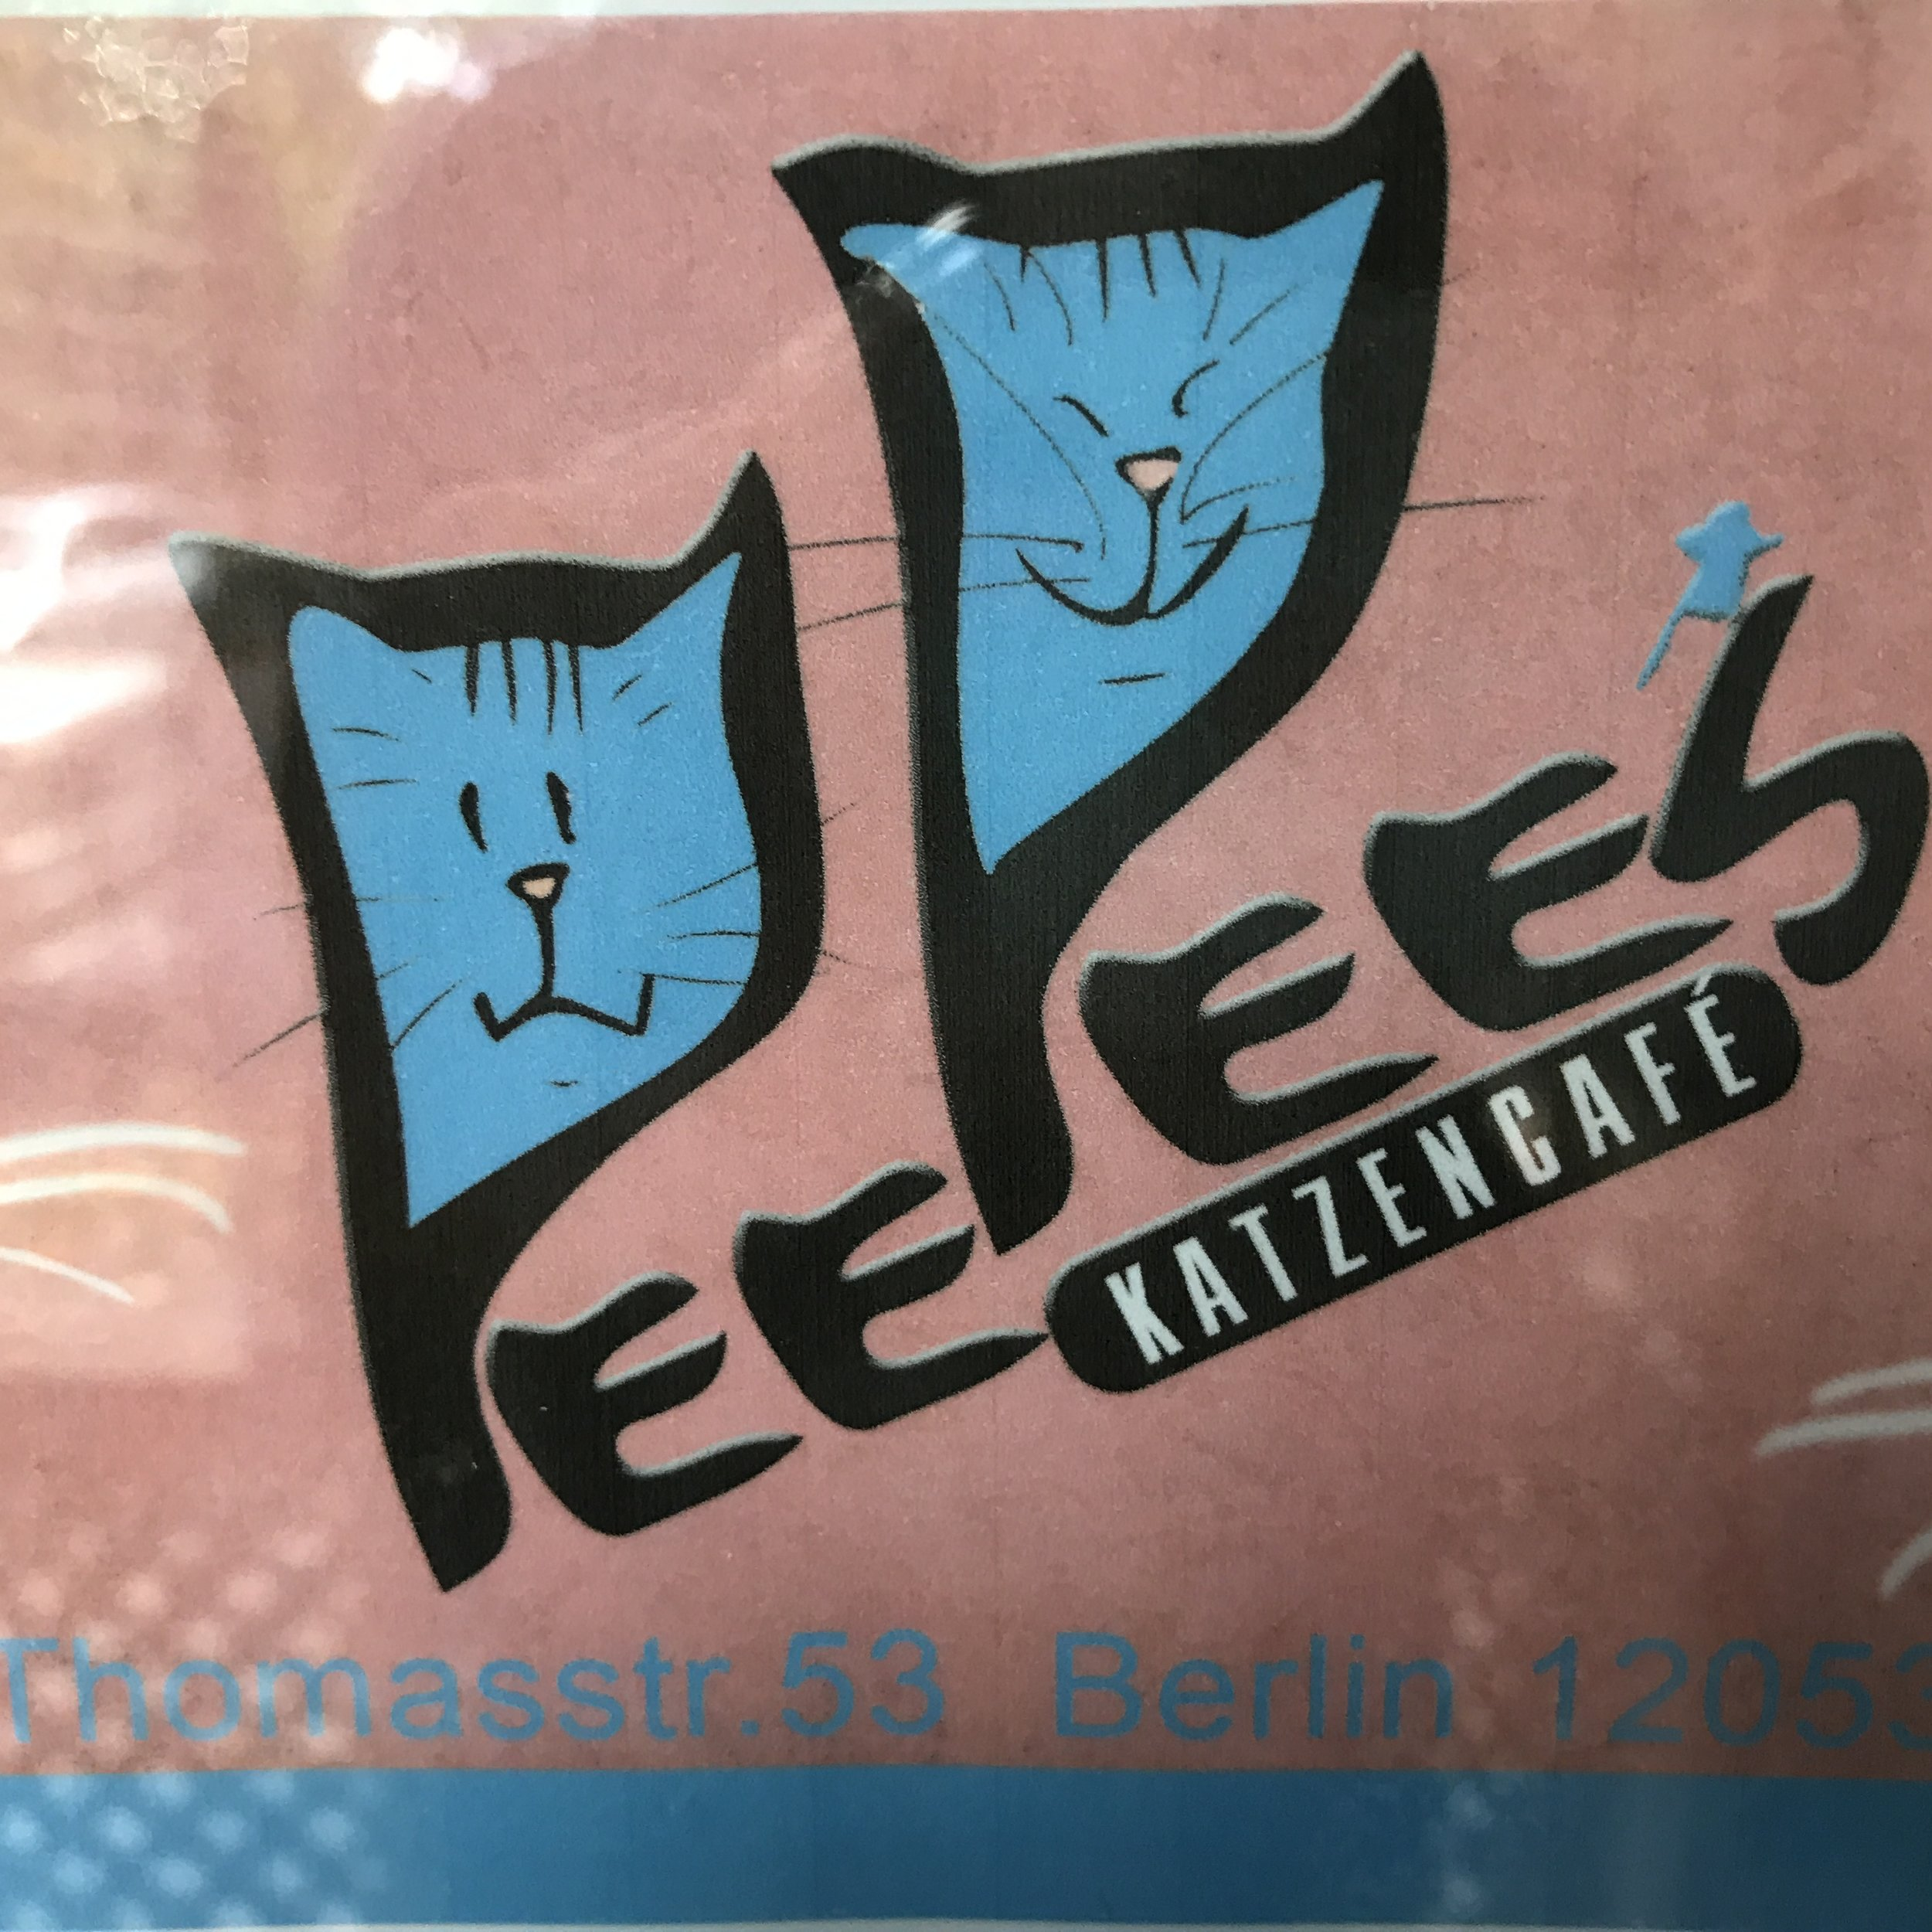 Pee Pees Katzencafe   Berlin, Germany